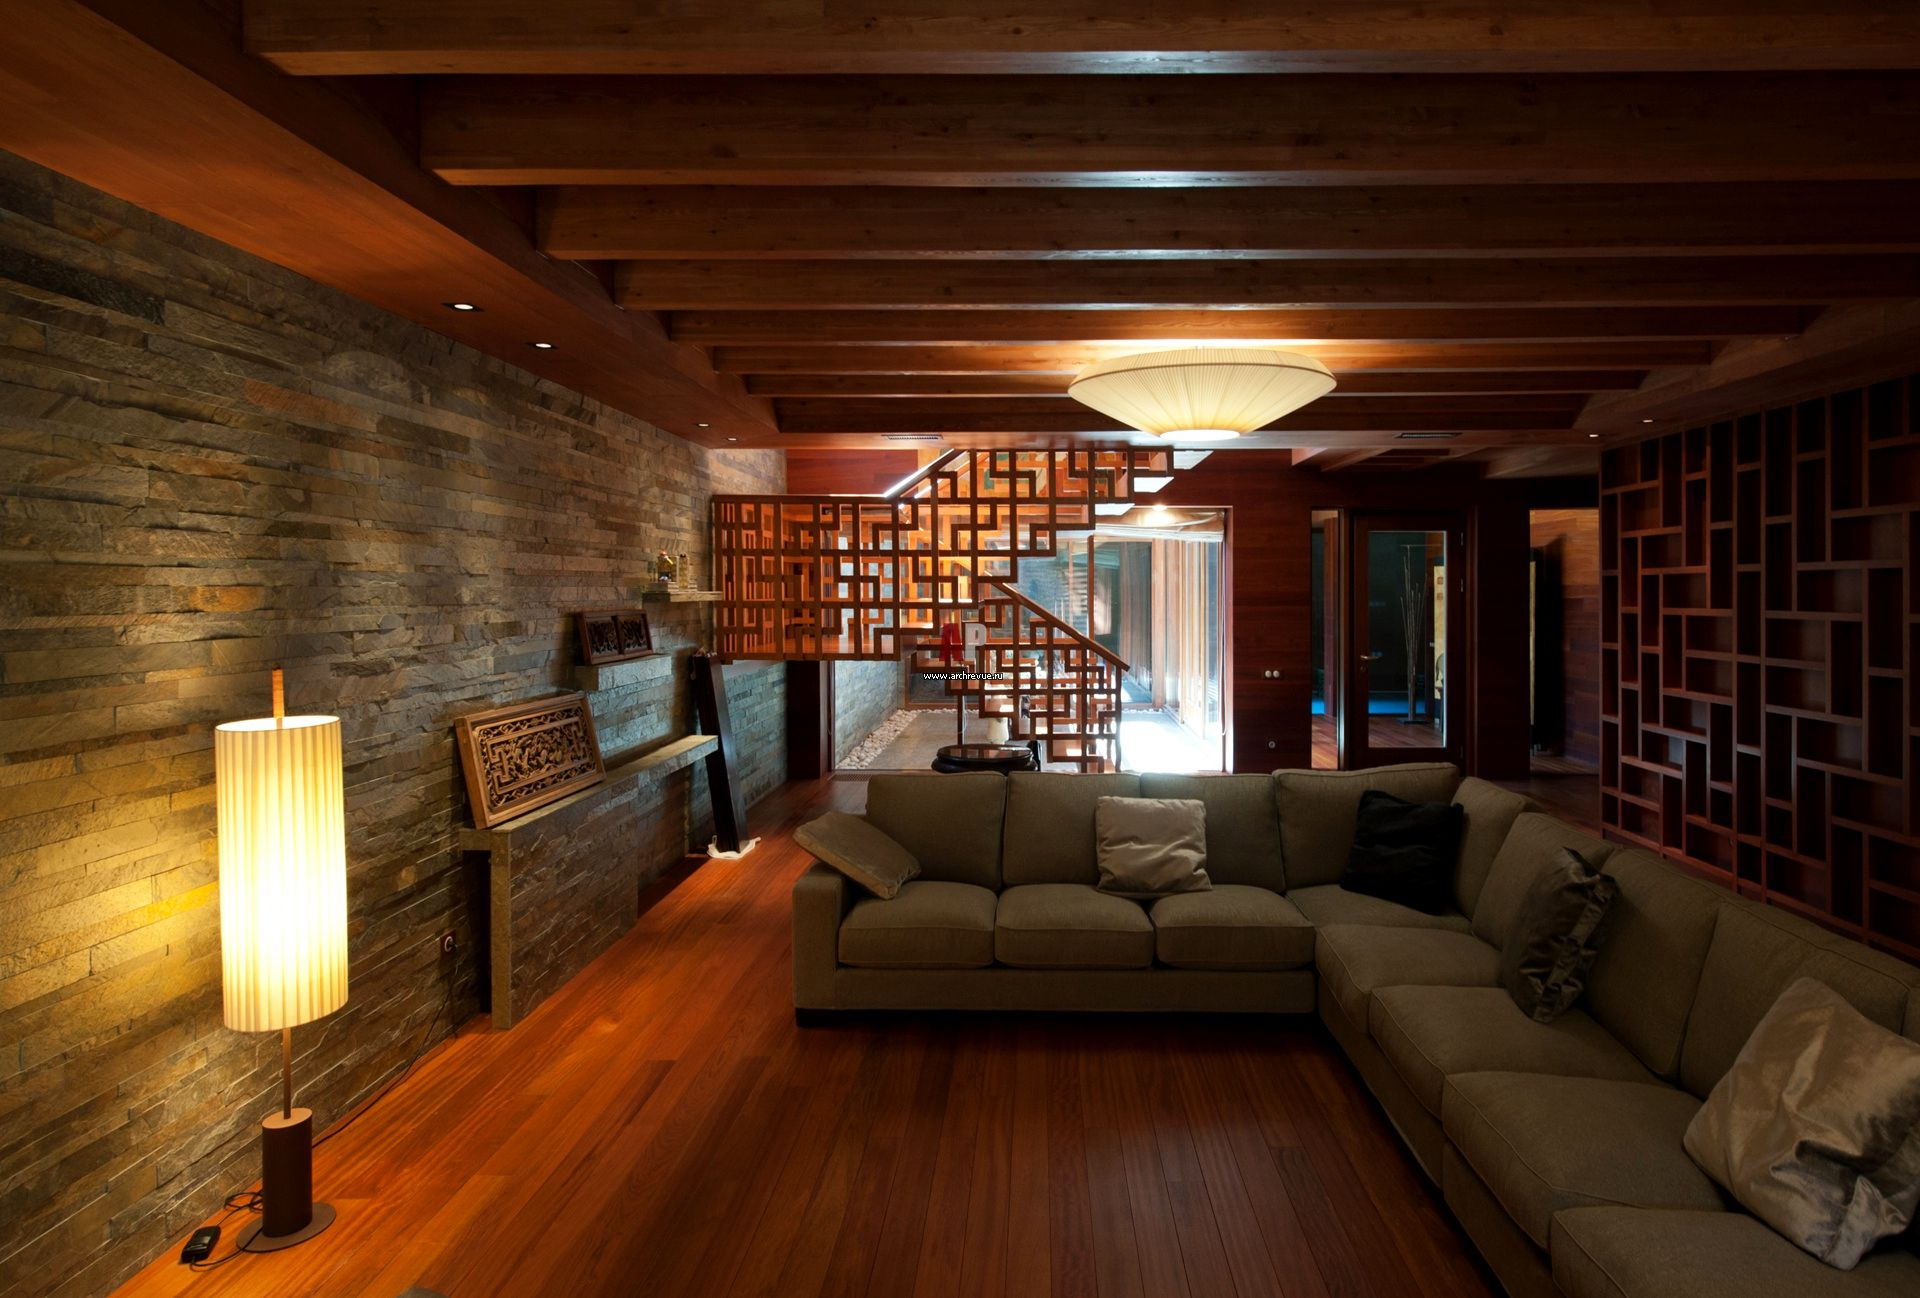 Wooden Beams Used For Natural Basement Ceiling Ideas Above Long Grey  Sectional Sofa And Hardwood Flooring